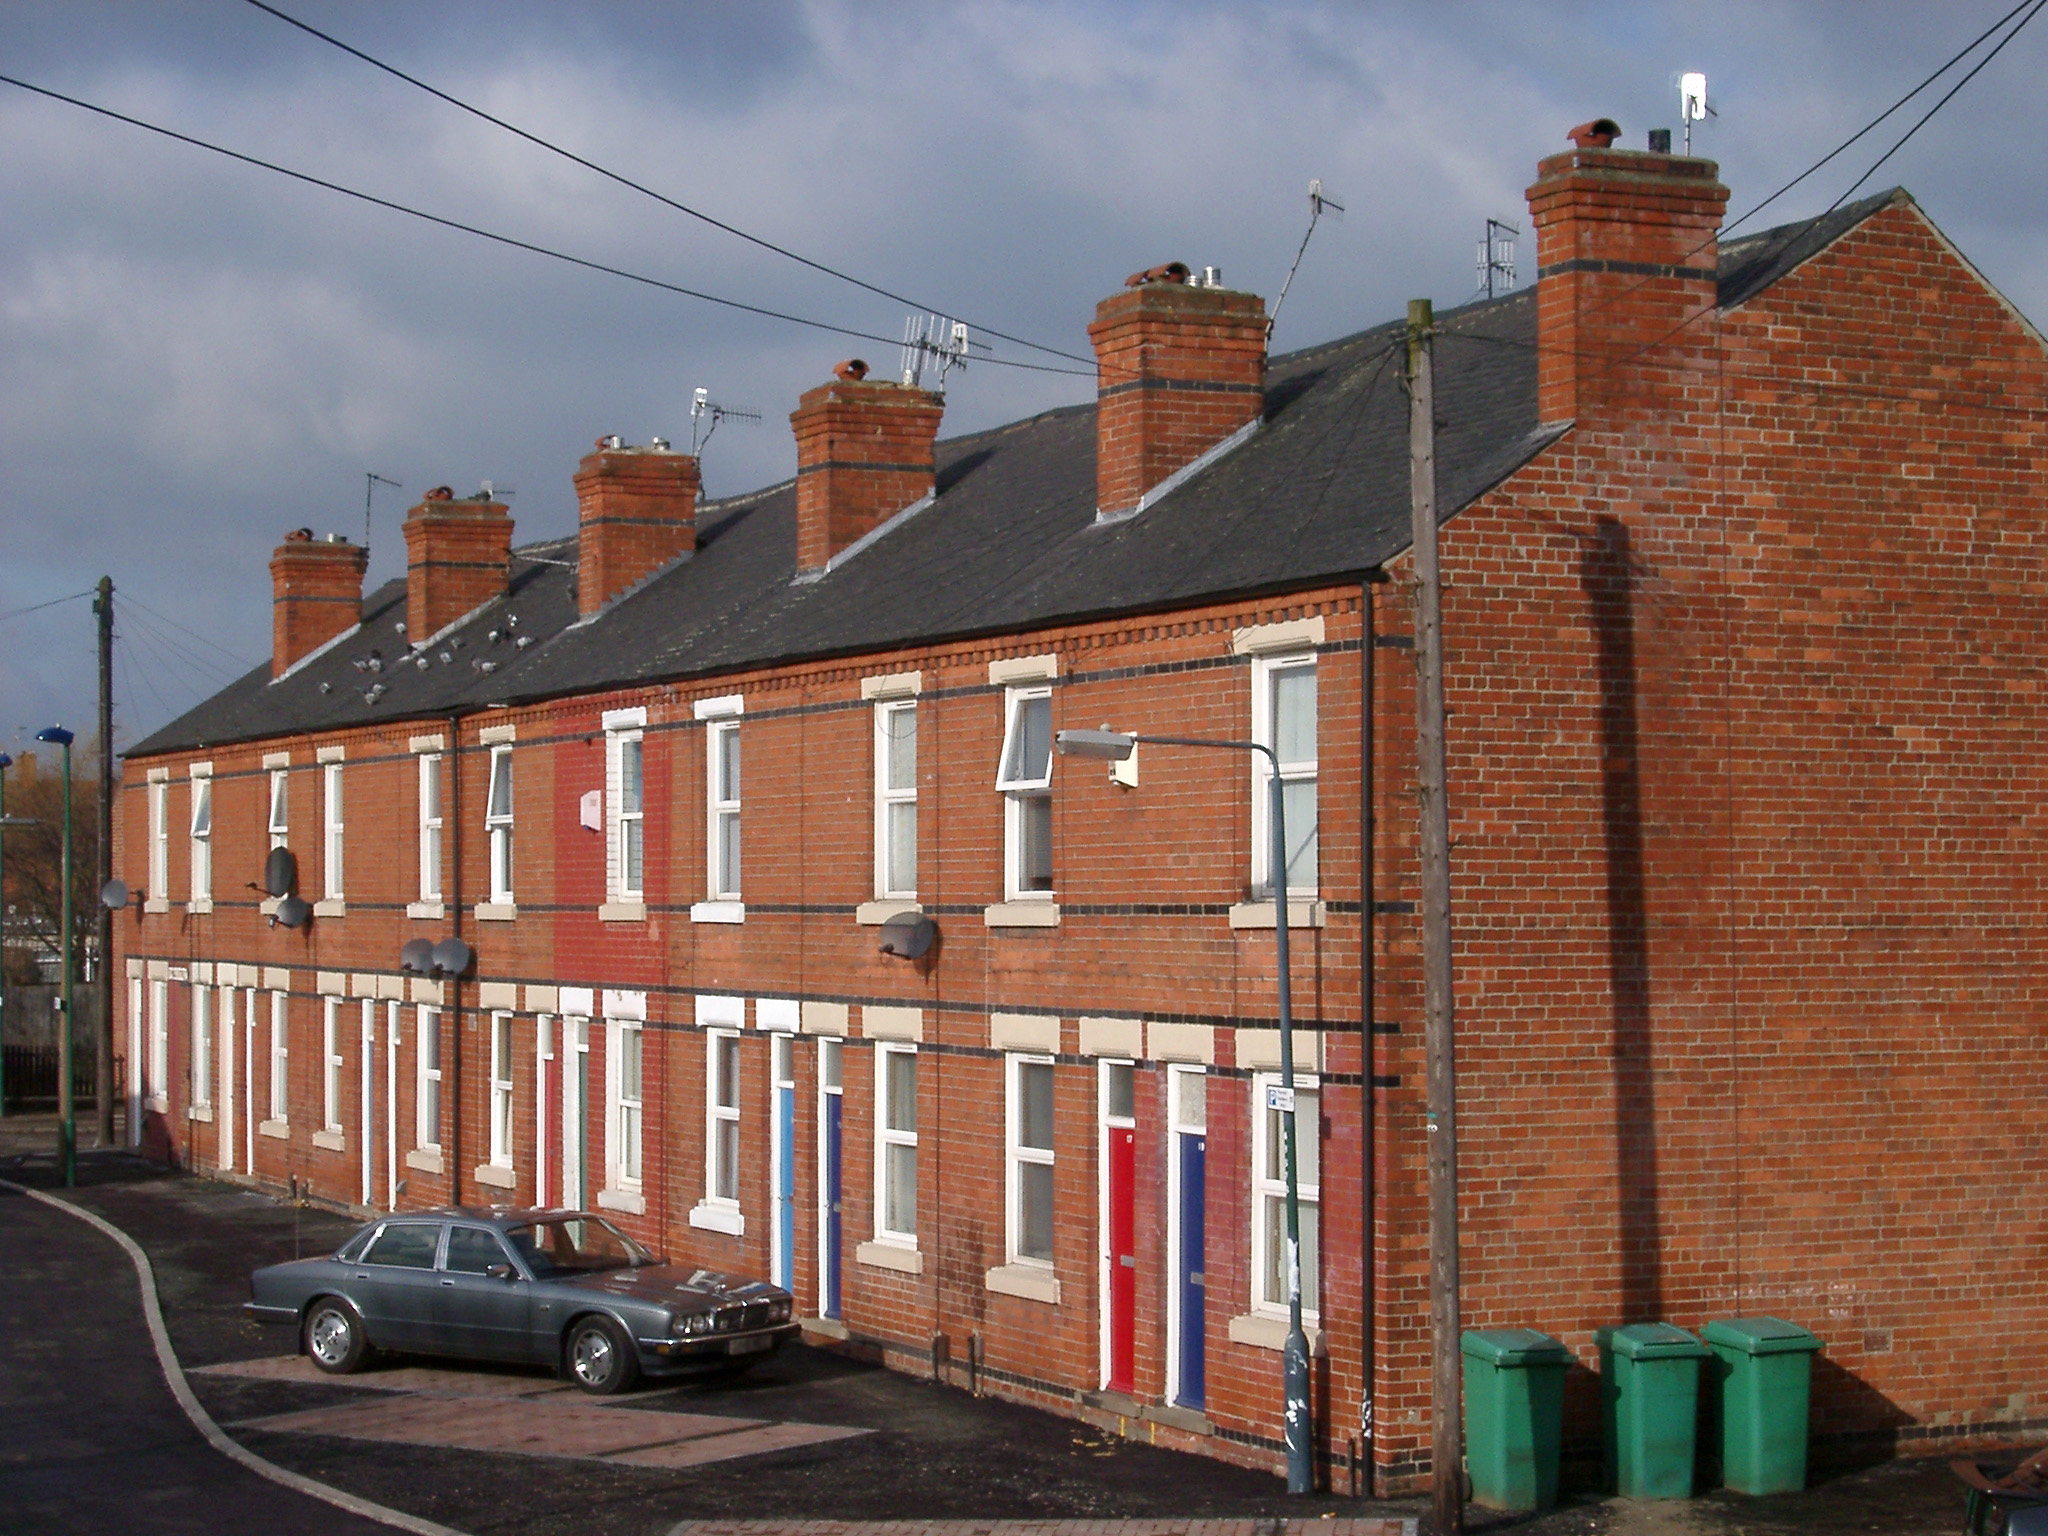 Free stock photo of red brick terraced houses for Terrace images